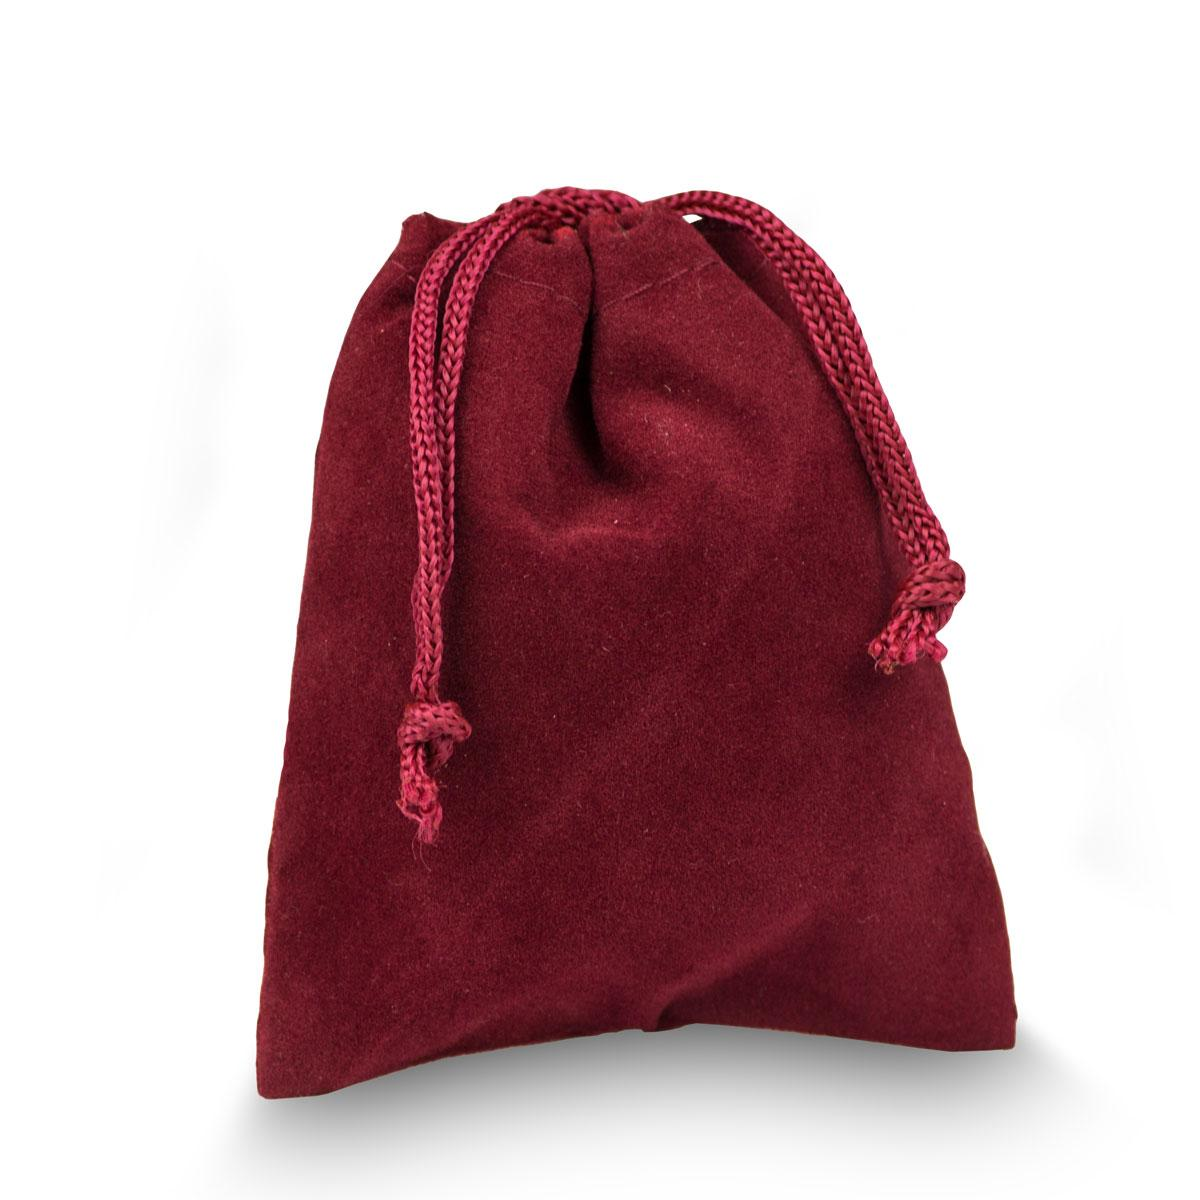 red velour pouch with drawstrings